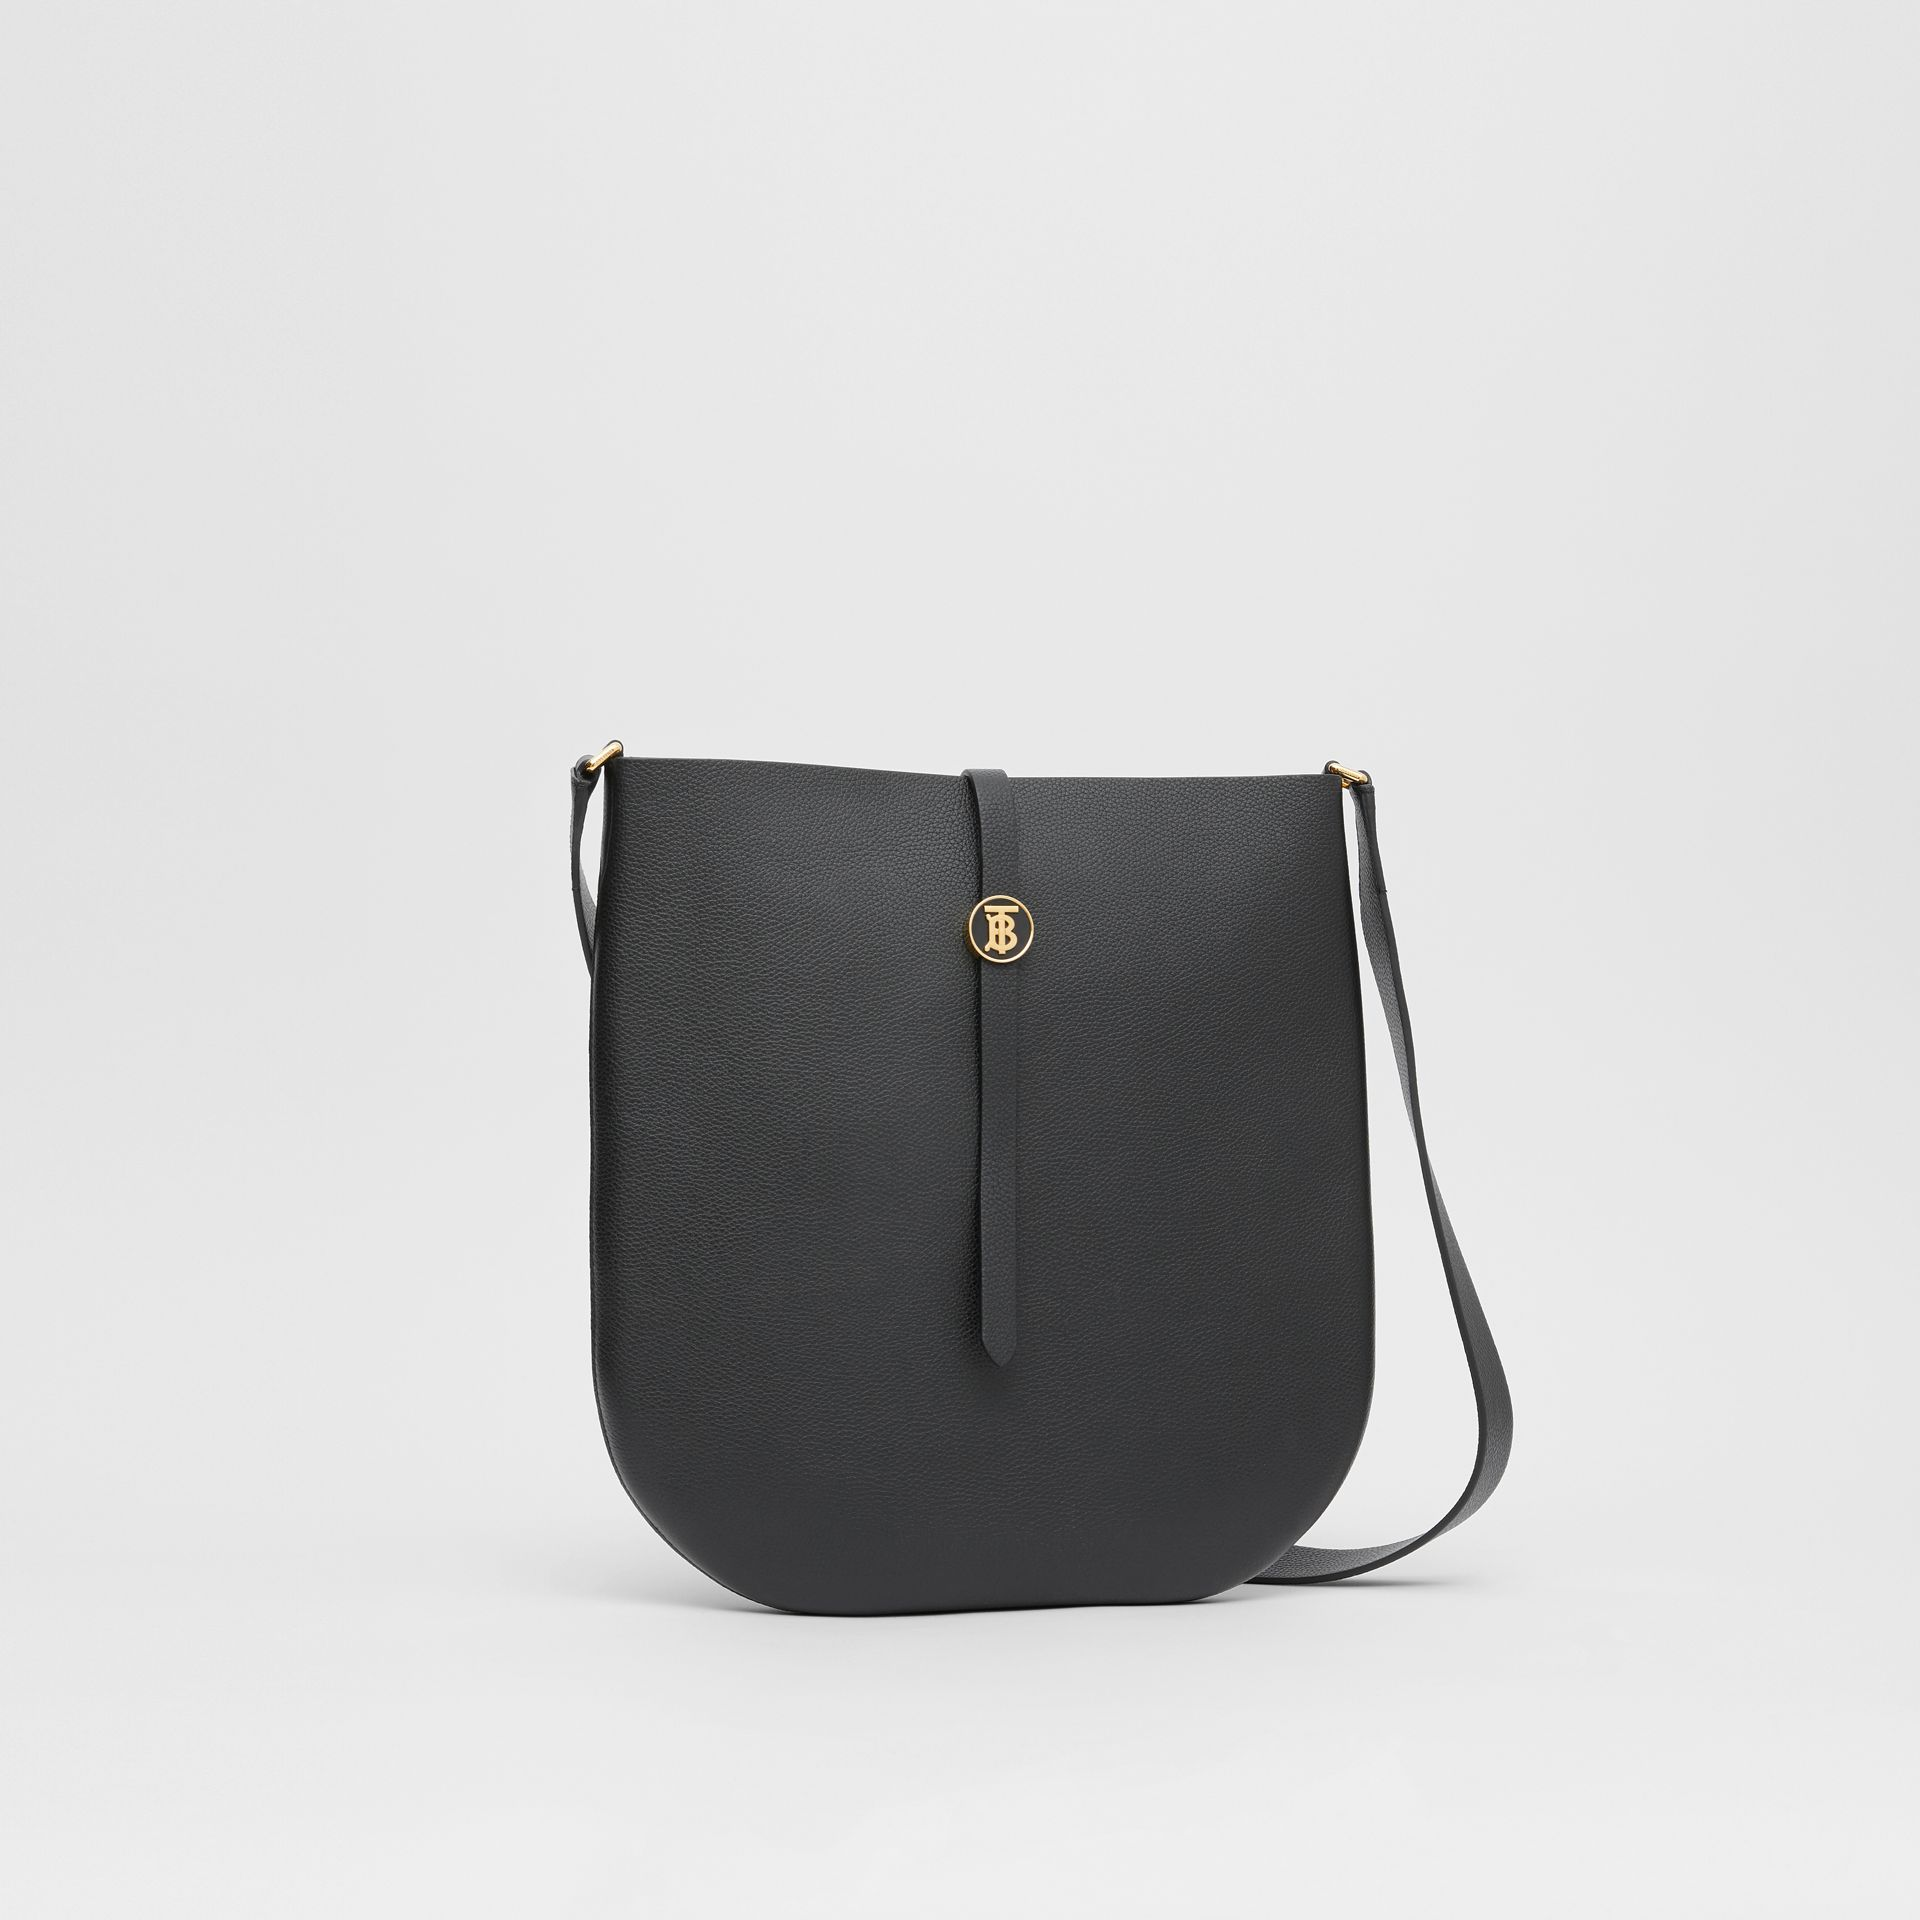 Grainy Leather Anne Bag in Black - Women | Burberry - gallery image 6